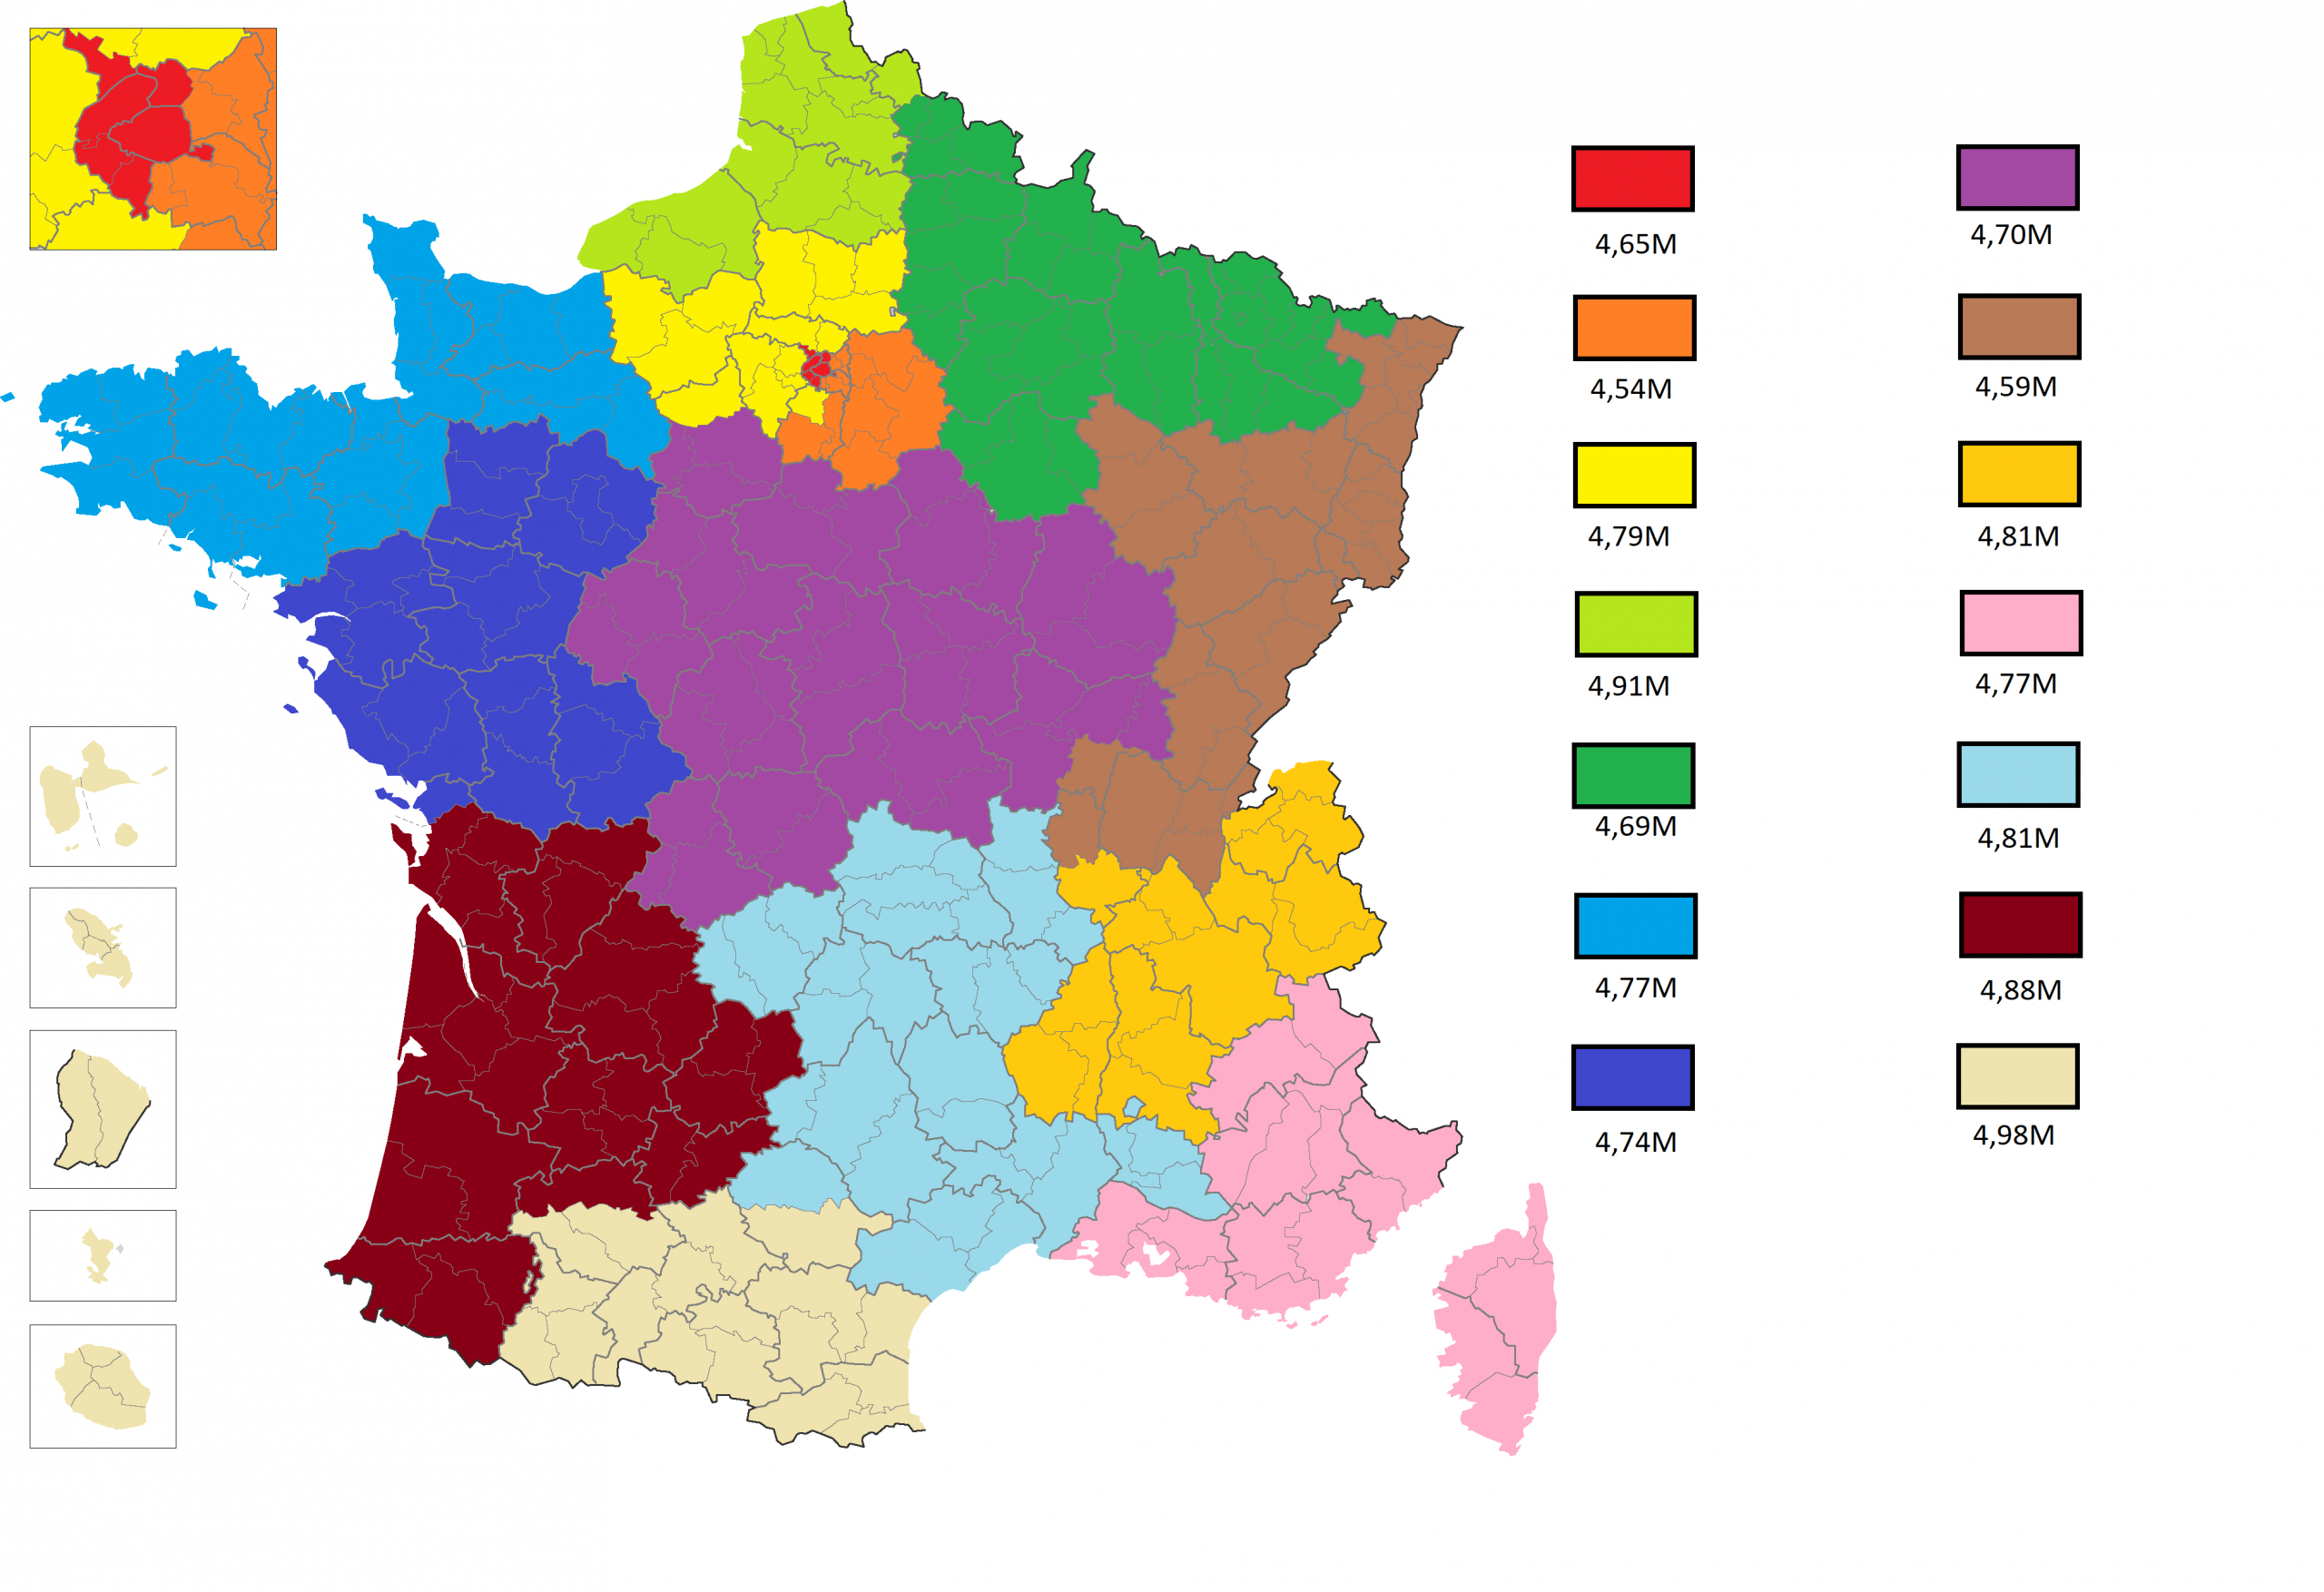 Week 14: France If Its 14 Regions (13+Overseas) Had About à Les 13 Régions